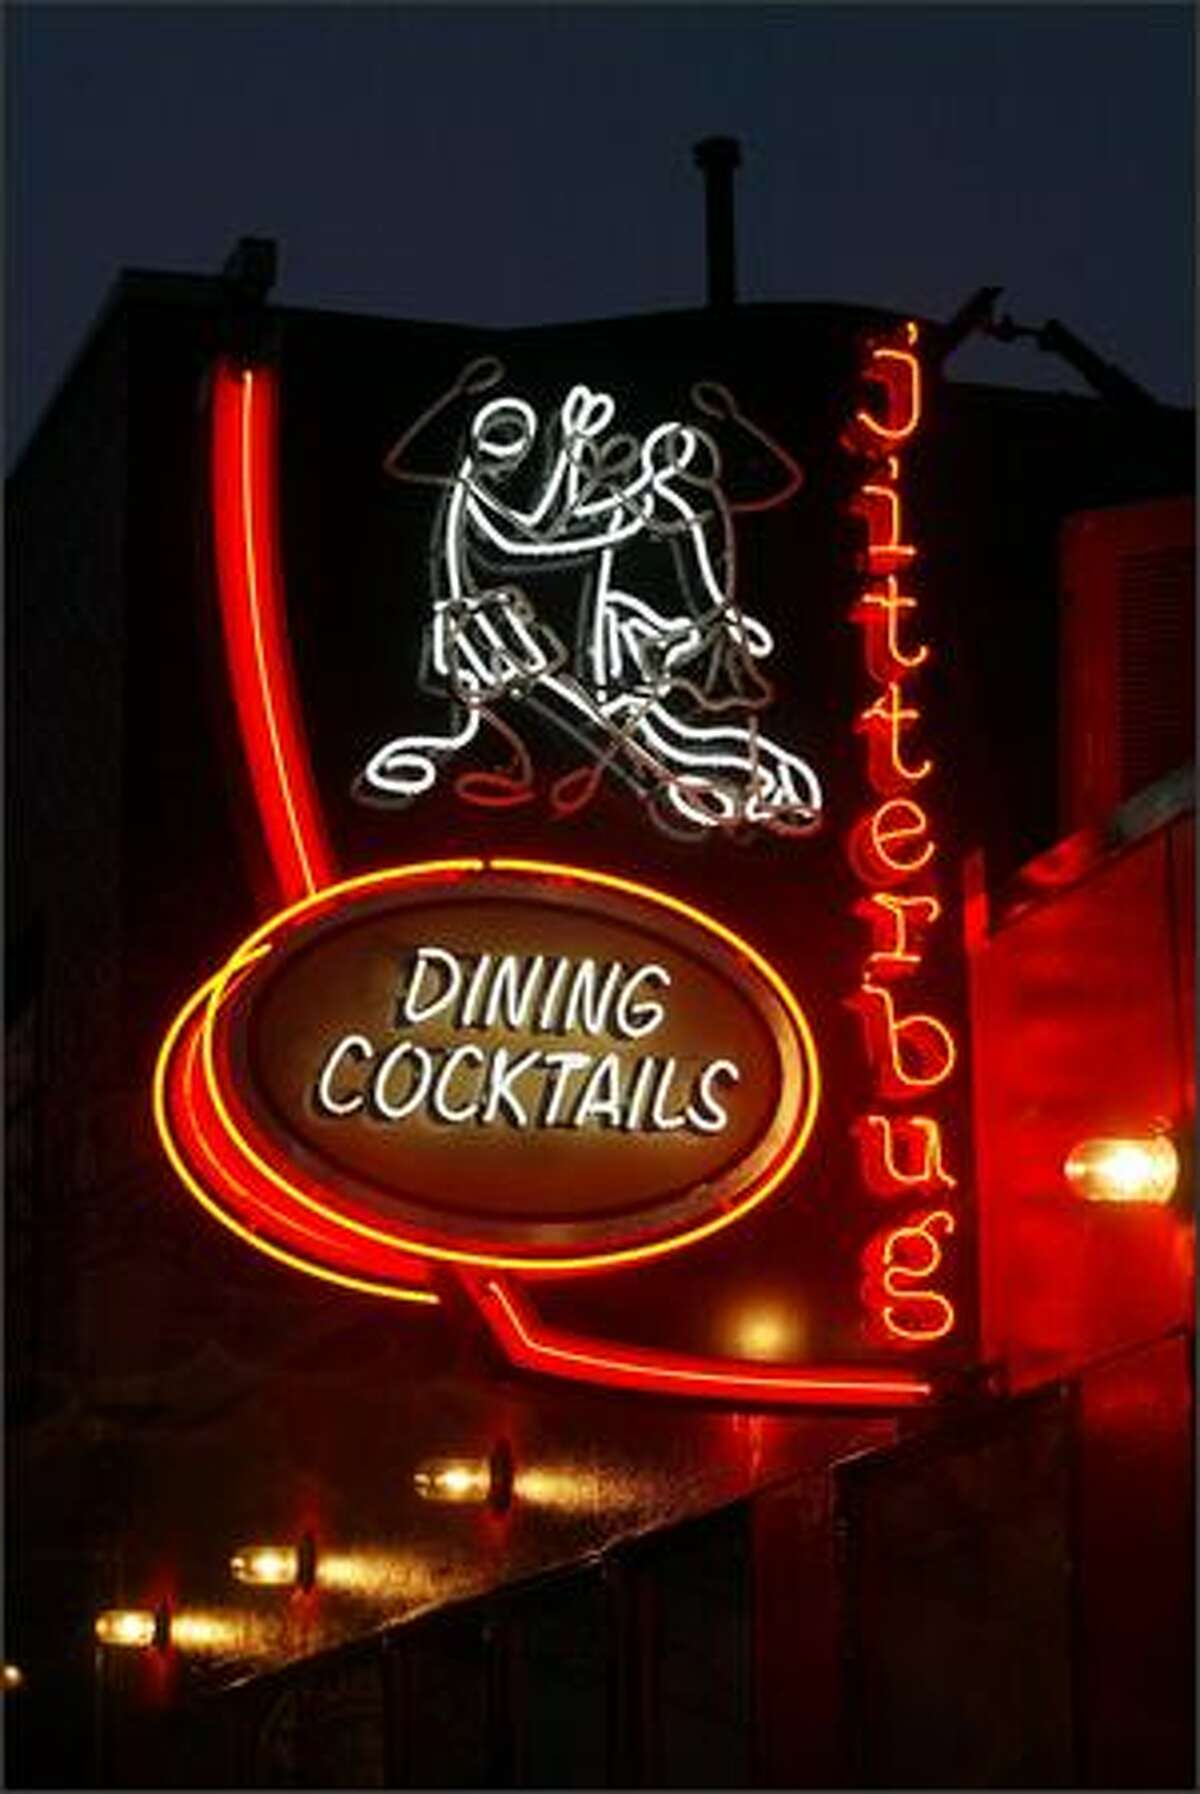 The Jitterbug Cafe on North 45th Street in Seattle.